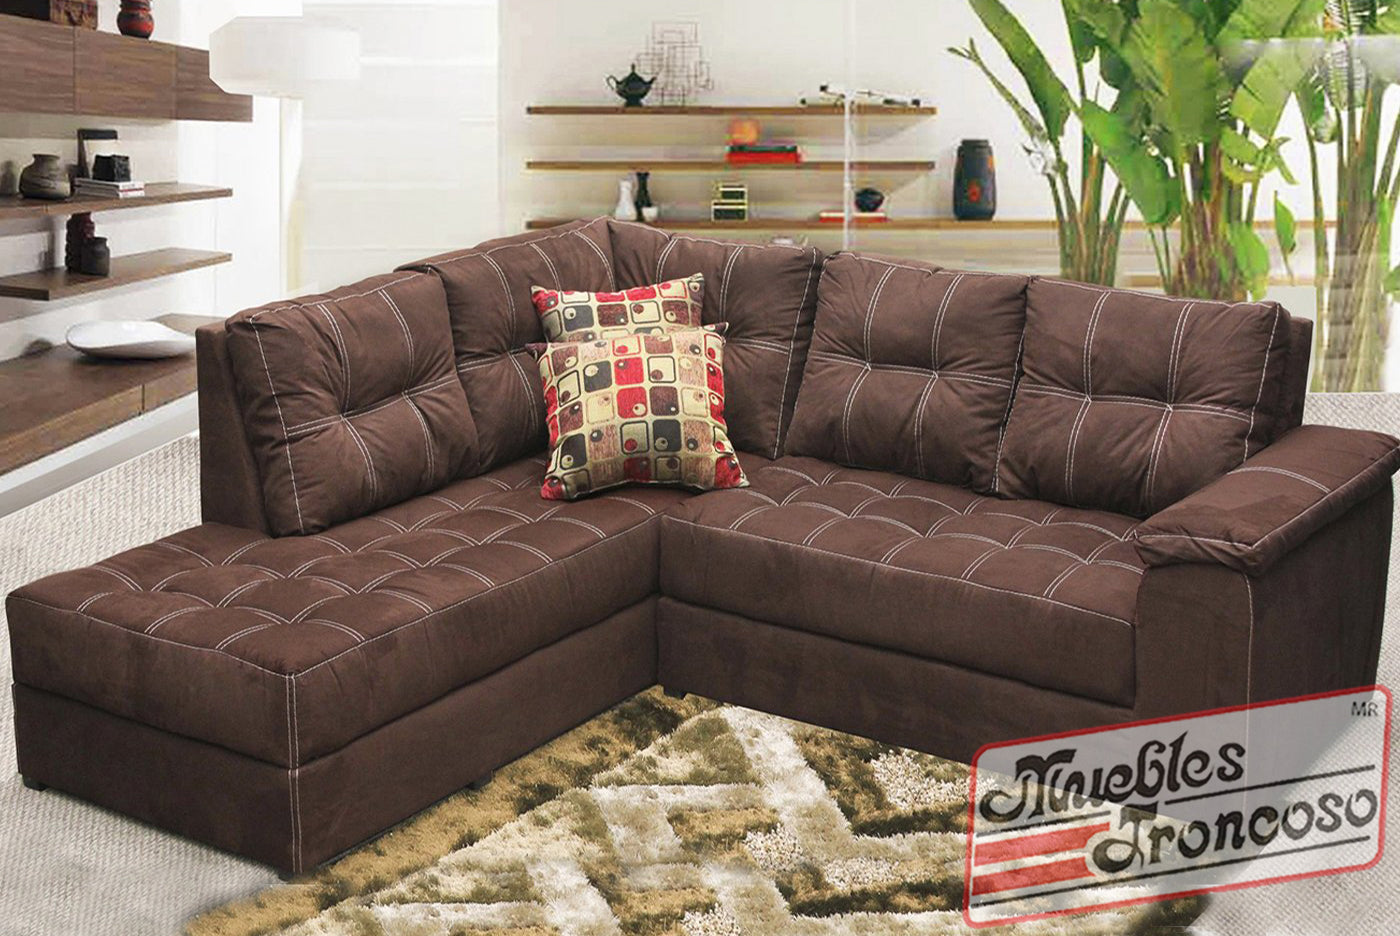 Sala milly modular chocolate muebles troncoso for Muebles troncoso salas